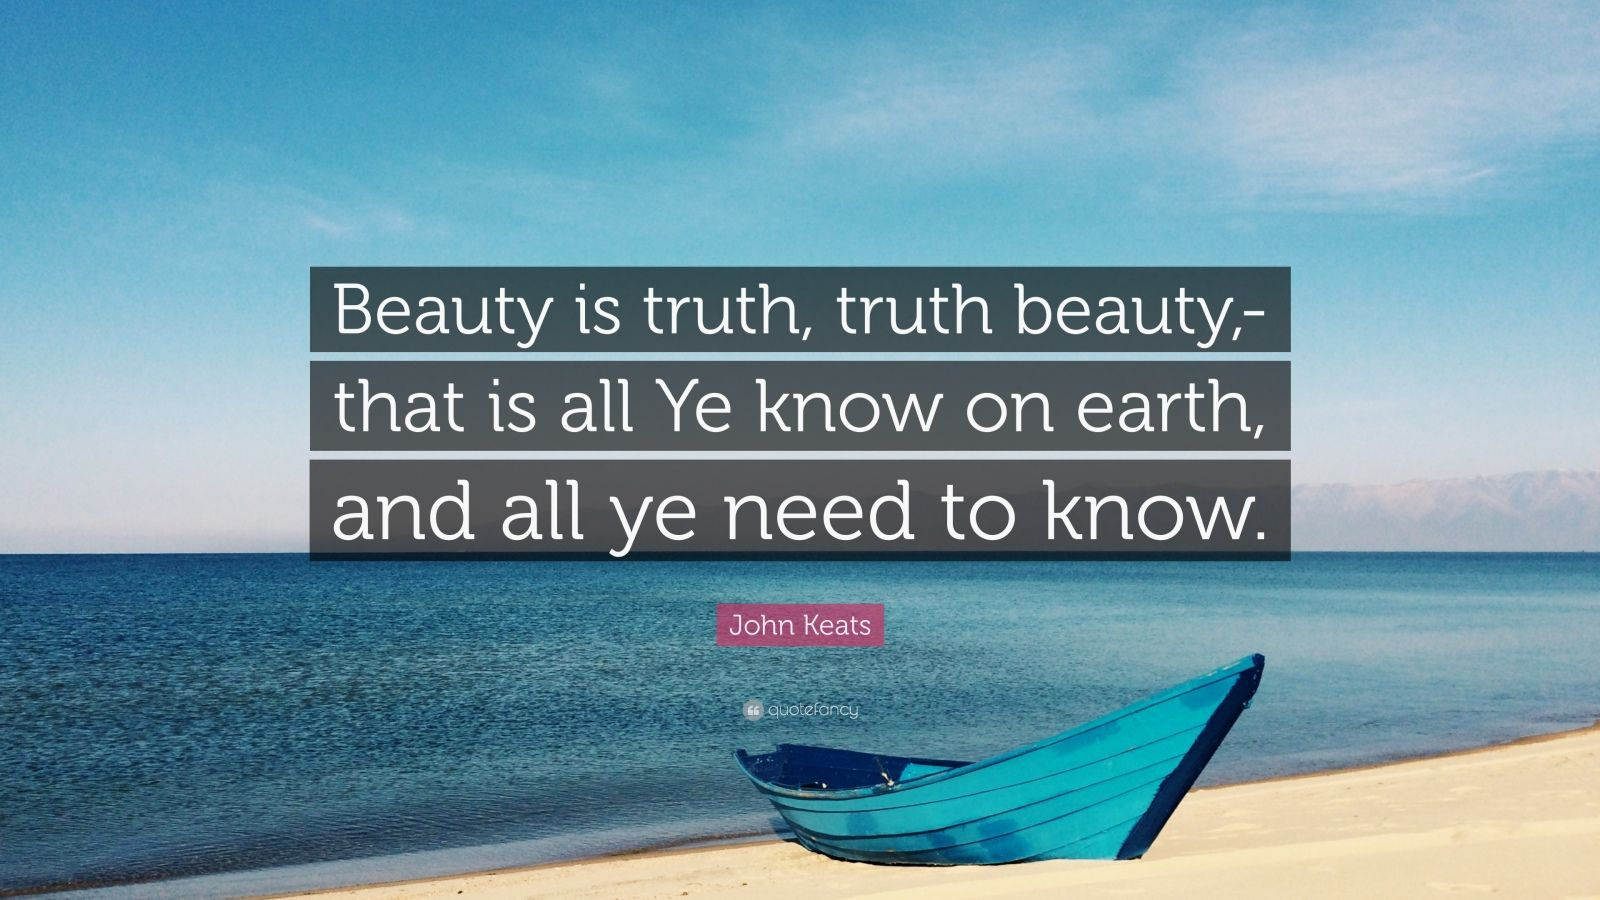 'beauty is truth truth beauty' discuss